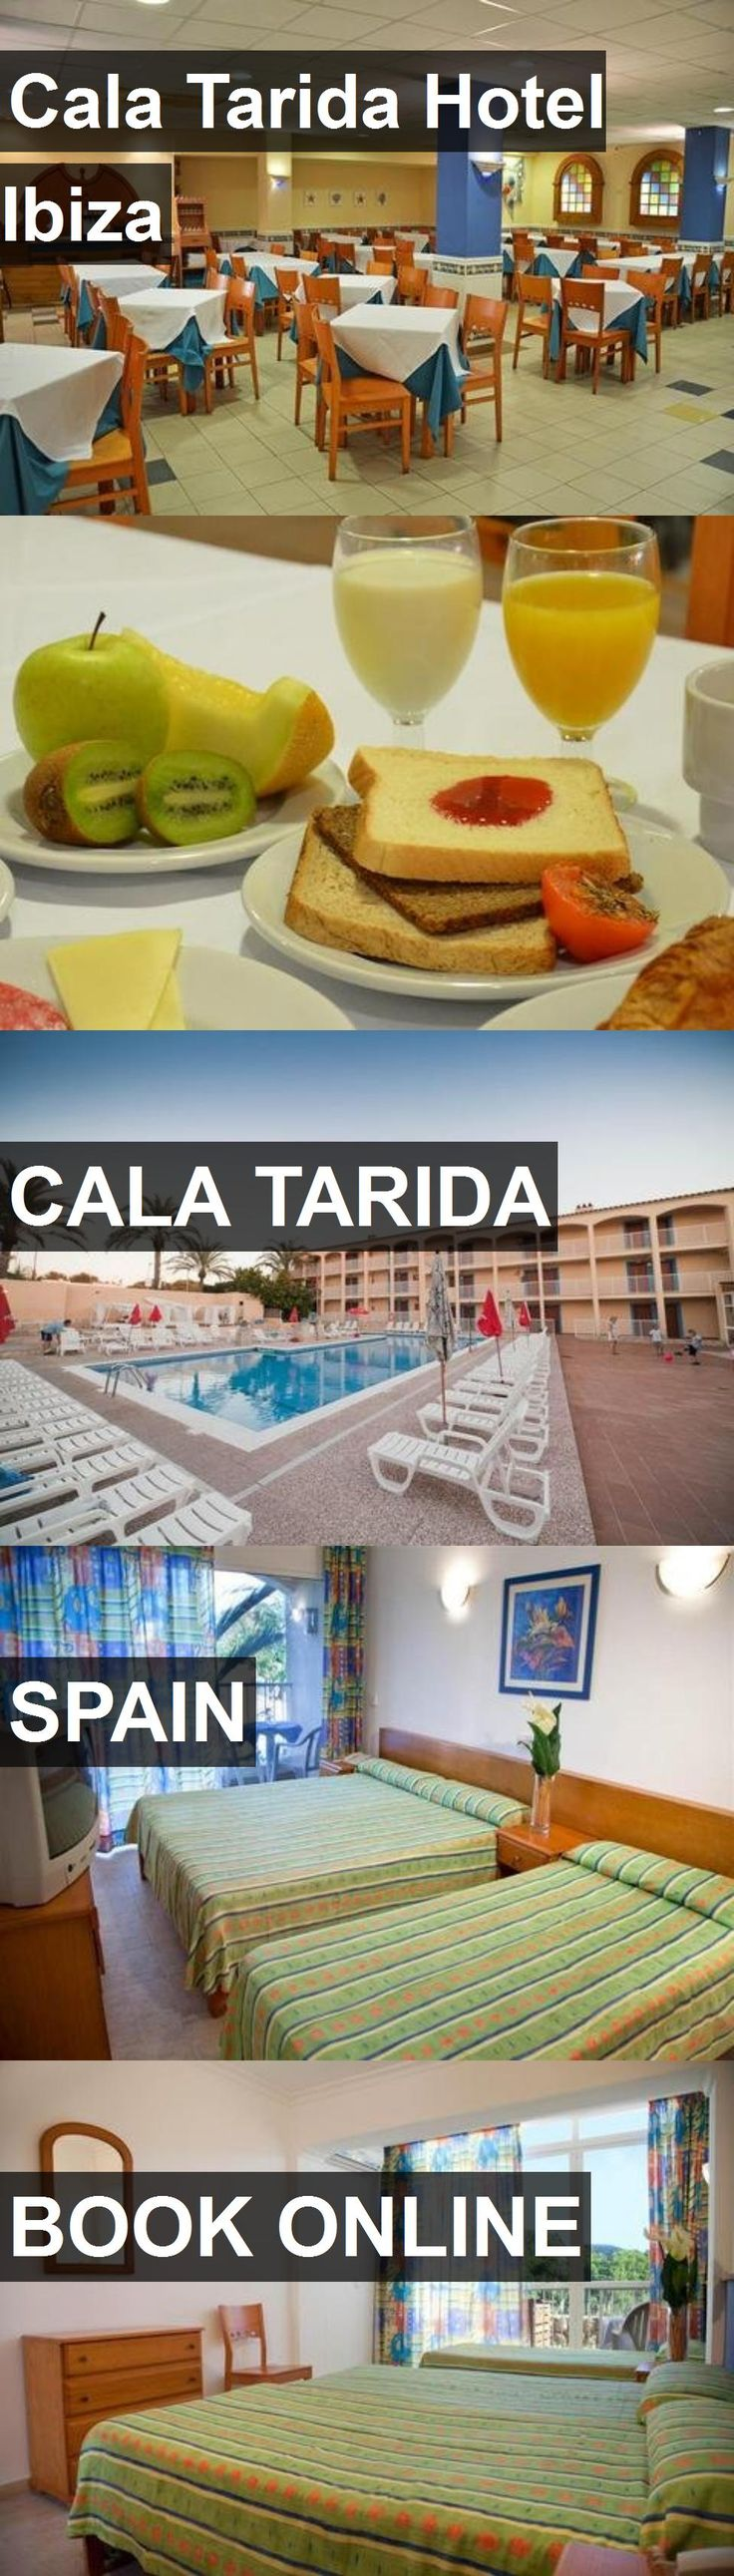 Hotel Cala Tarida Hotel Ibiza in Cala Tarida, Spain. For more information, photos, reviews and best prices please follow the link. #Spain #CalaTarida #CalaTaridaHotelIbiza #hotel #travel #vacation